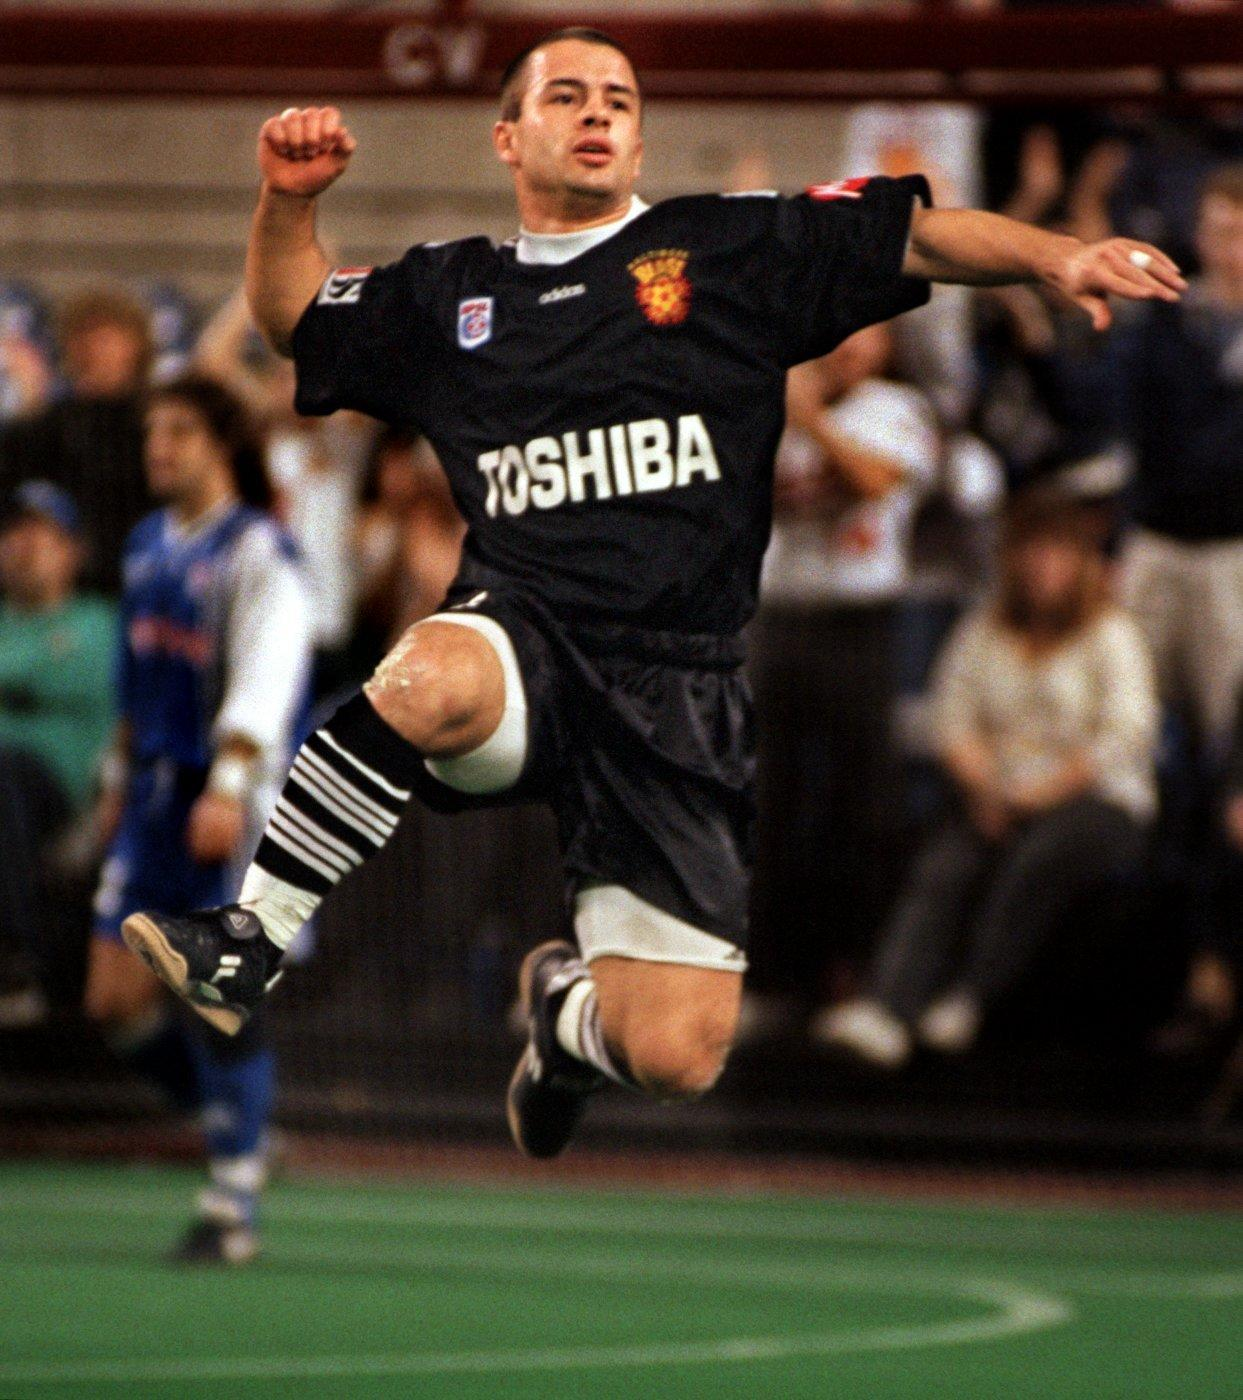 BALTIMORE, MD--2/28/99--Buffalo Blizzard at Baltimore Blast at the Baltimore Arena. Blast's # 5, Denison Cabral, celebrates after scoring a goal. Staff Photo/ Karl Merton Ferron.